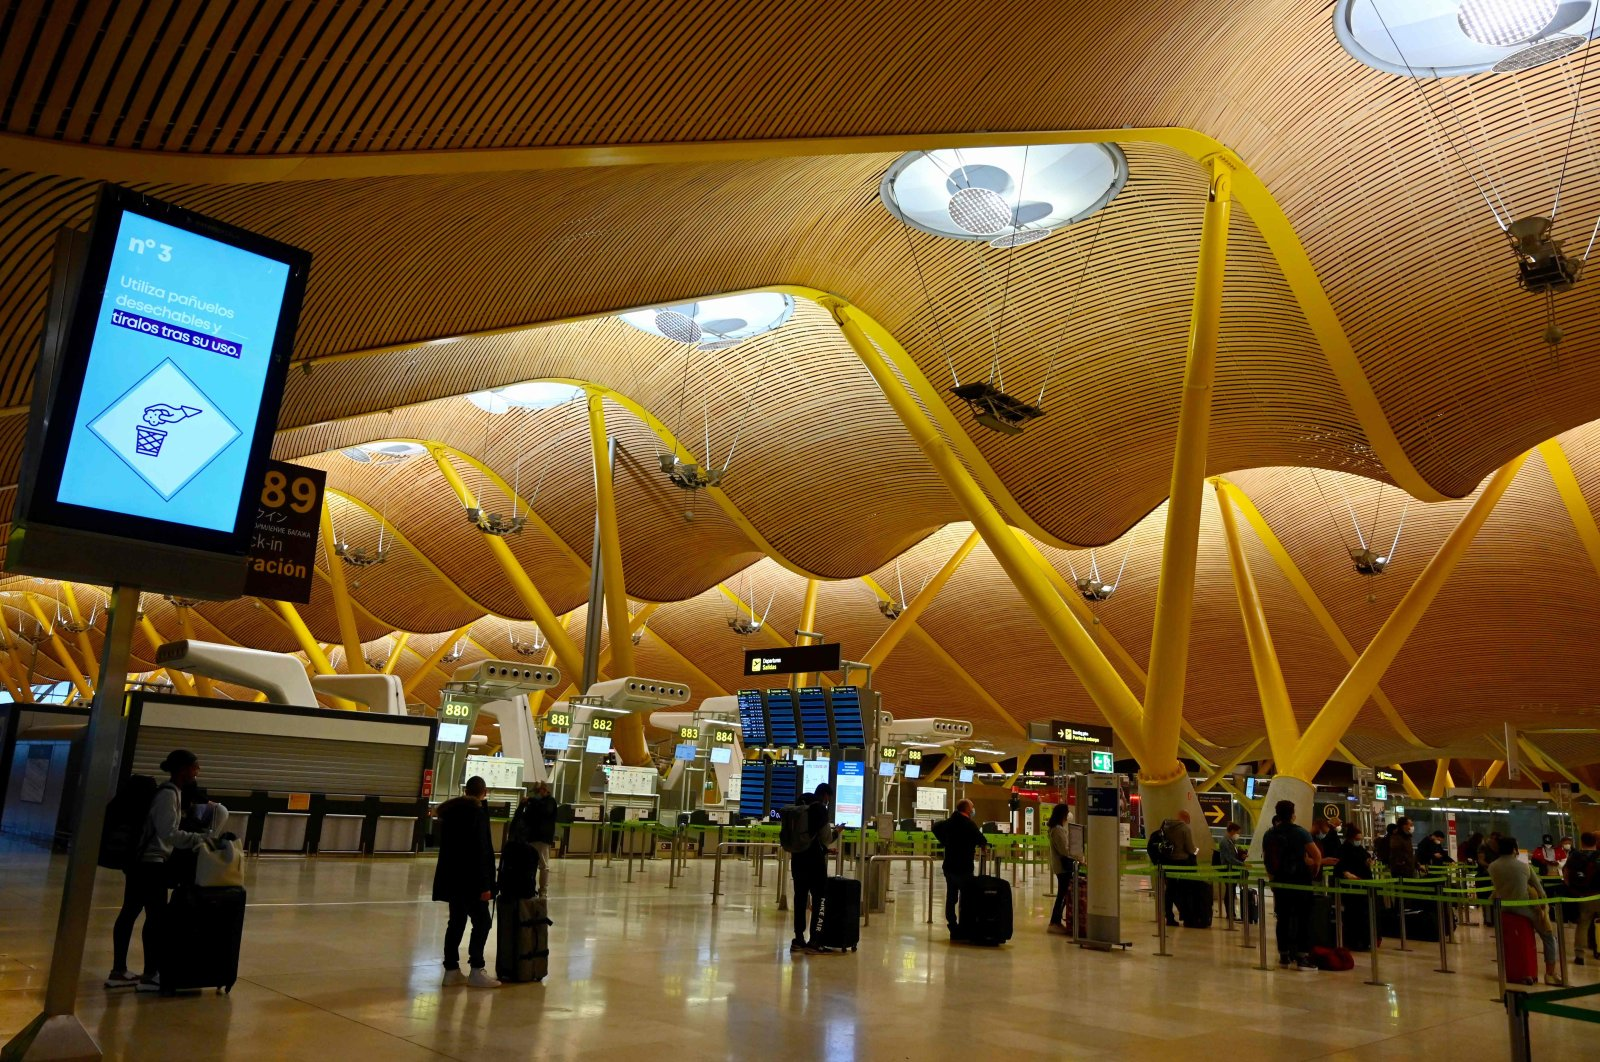 Passengers queue at the terminal 4 of the Madrid-Barajas Adolfo Suarez airport in Barajas on May 16, 2020. (AFP Photo)